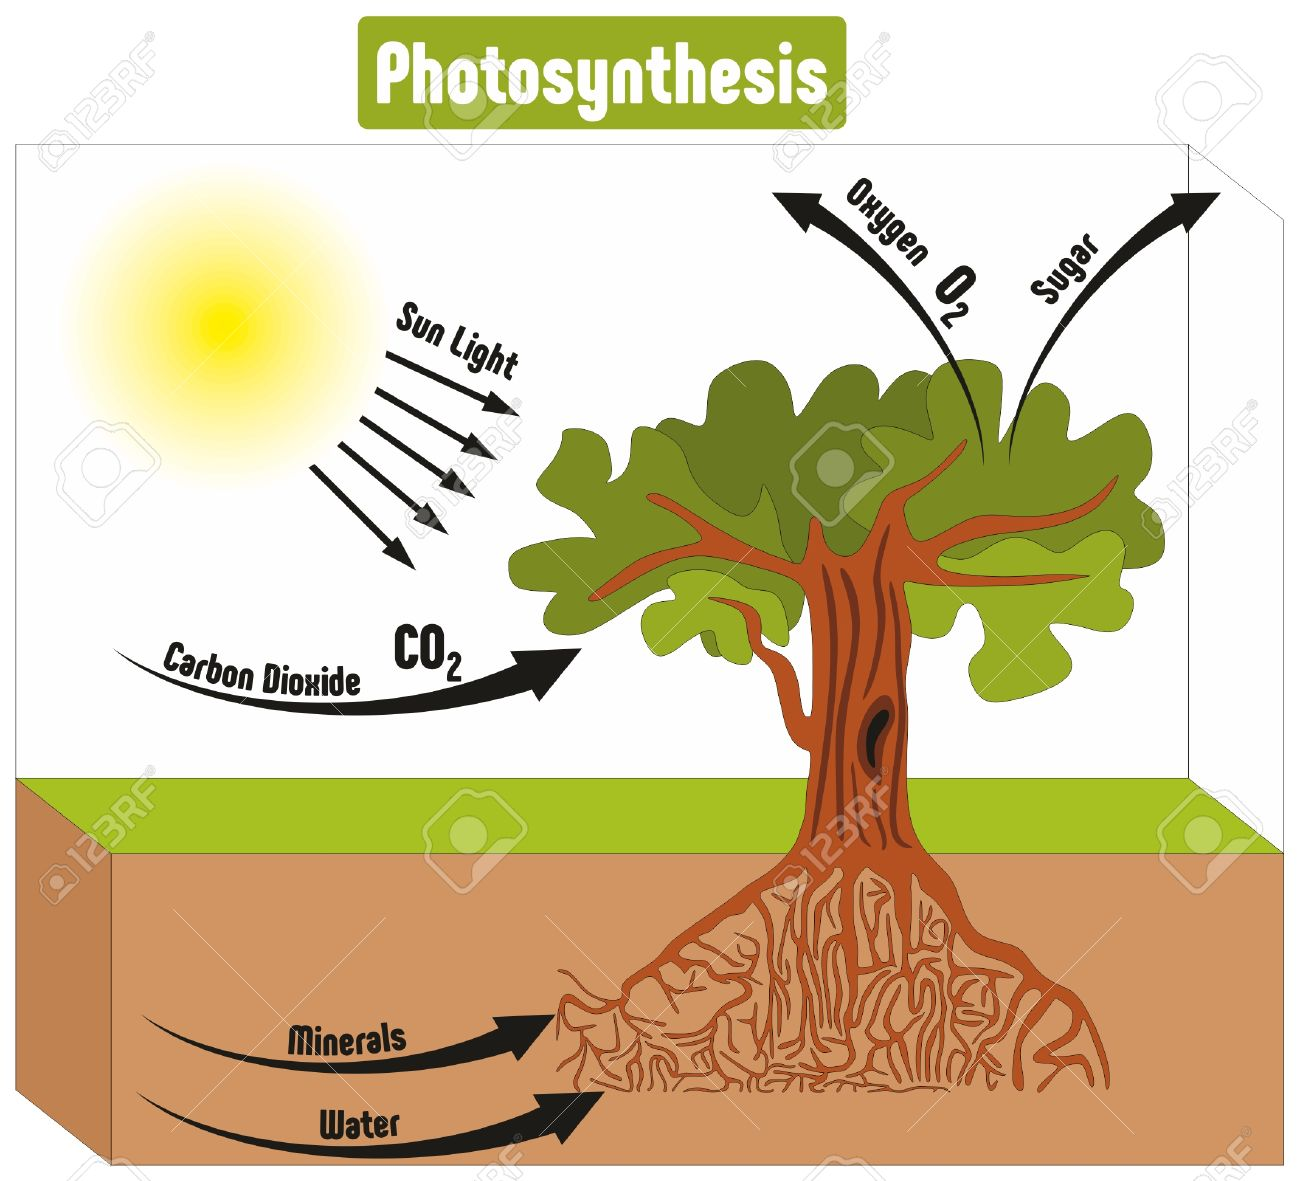 Photosynthesis process in plant diagram with all factors and photosynthesis process in plant diagram with all factors and outputs including sun light carbon dioxide minerals ccuart Images